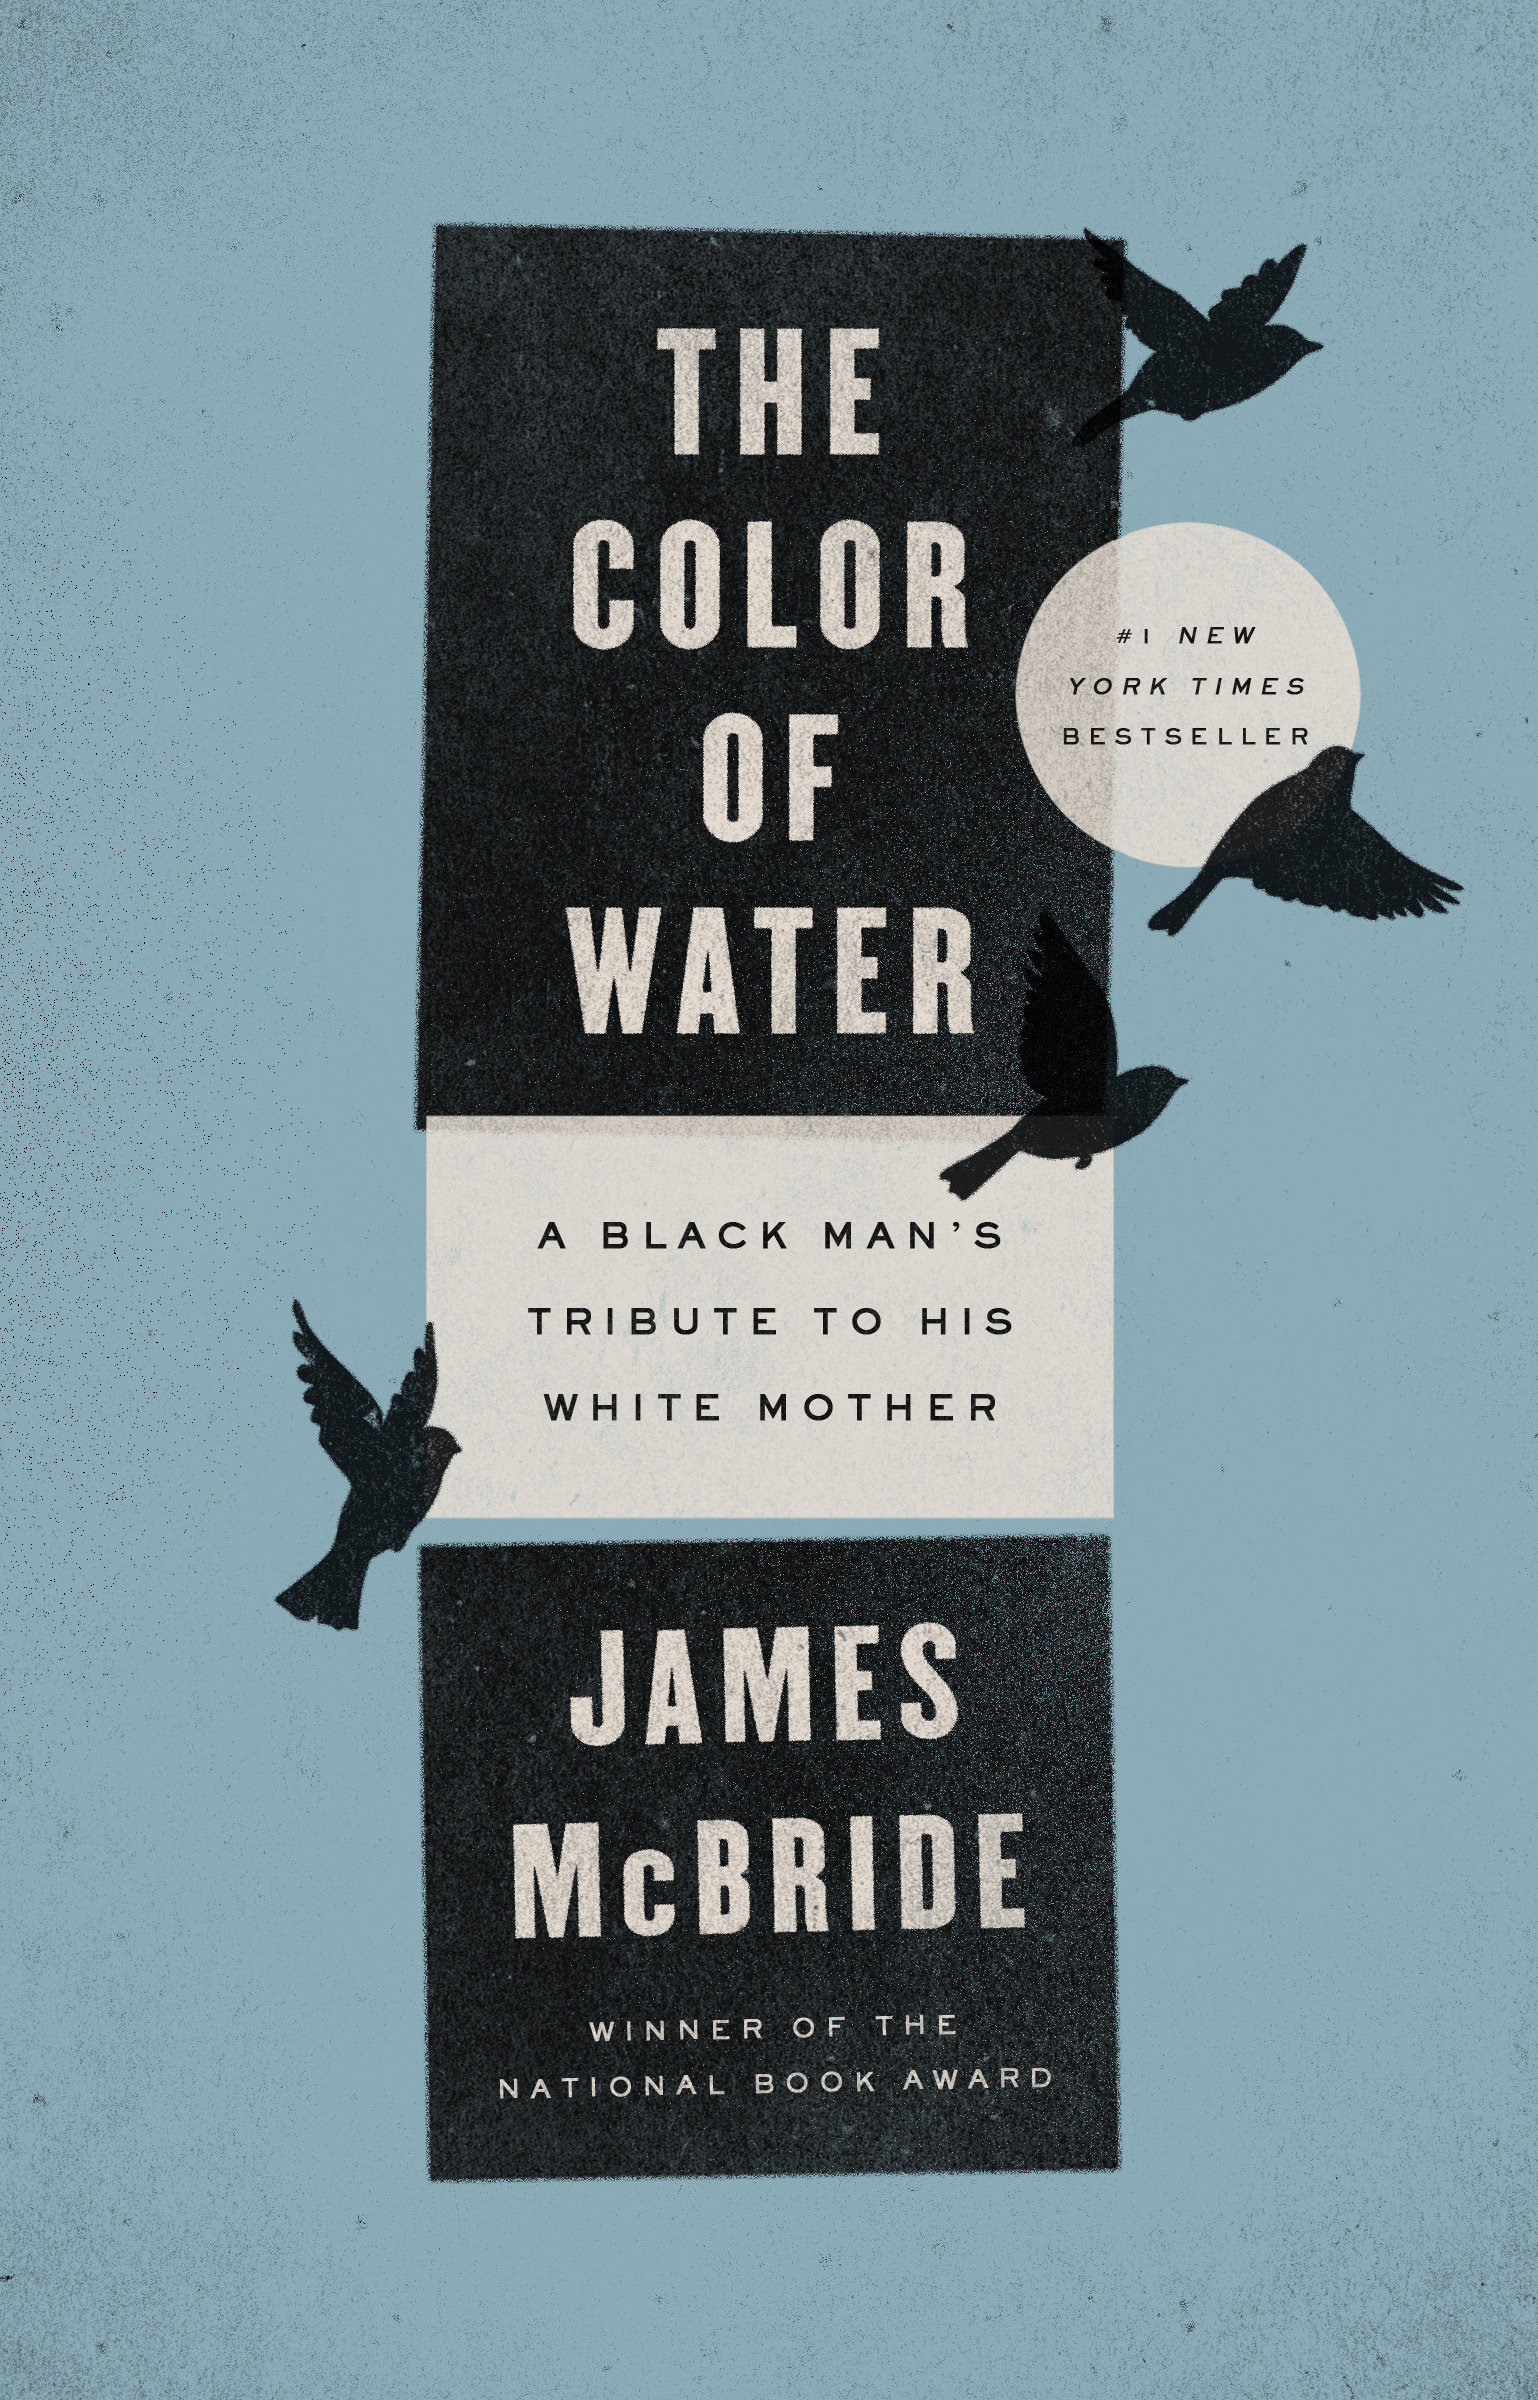 The color of water cover image